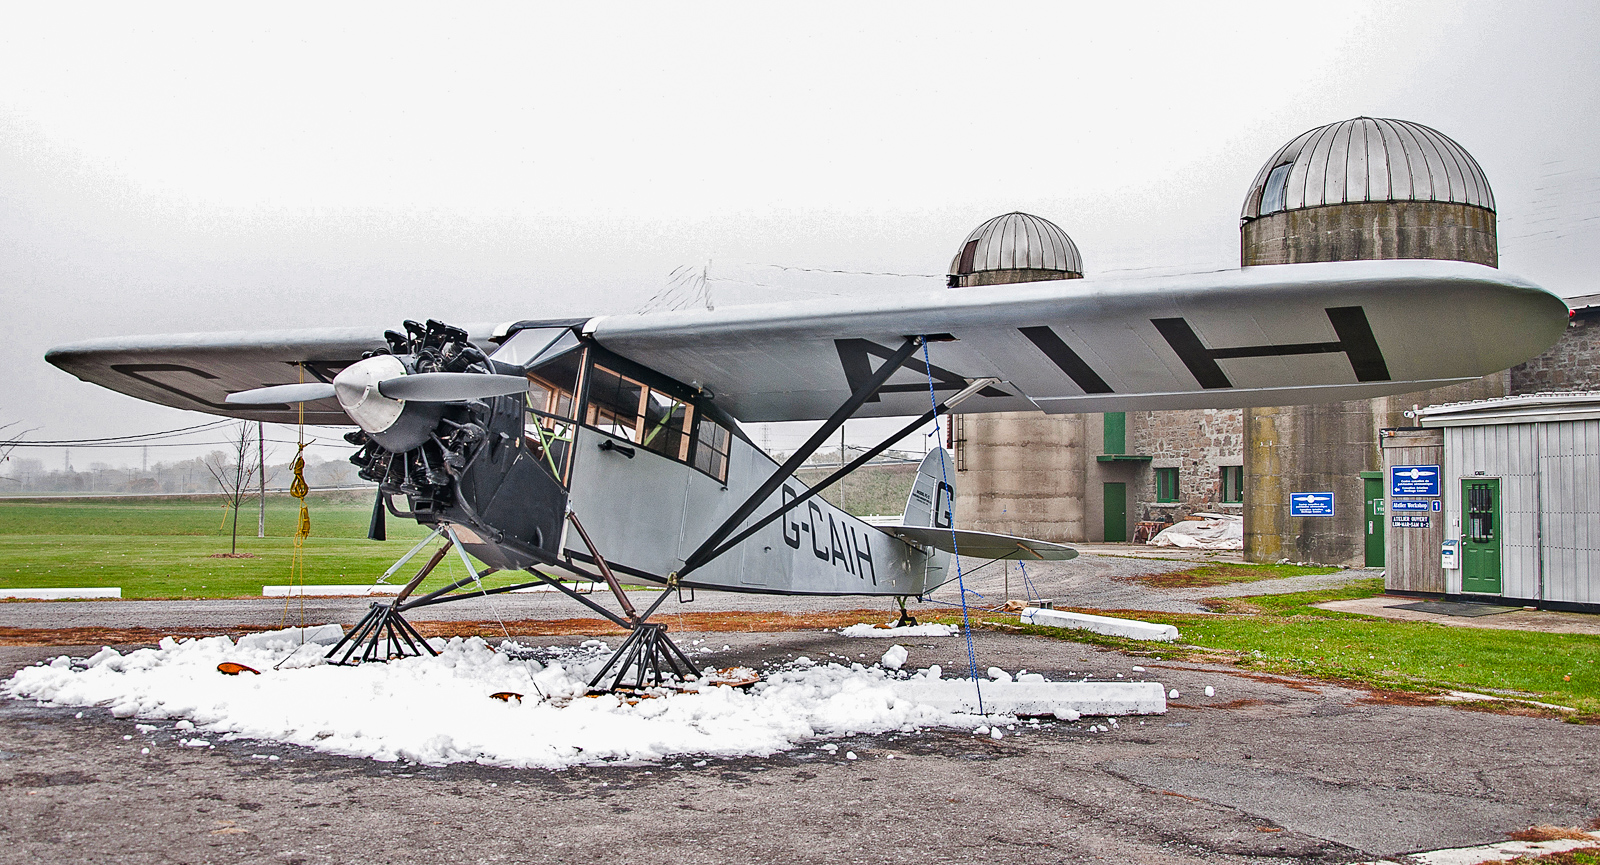 The replica Fairchild FC-2 outside the museum. (photo by Robert St.Pierre)